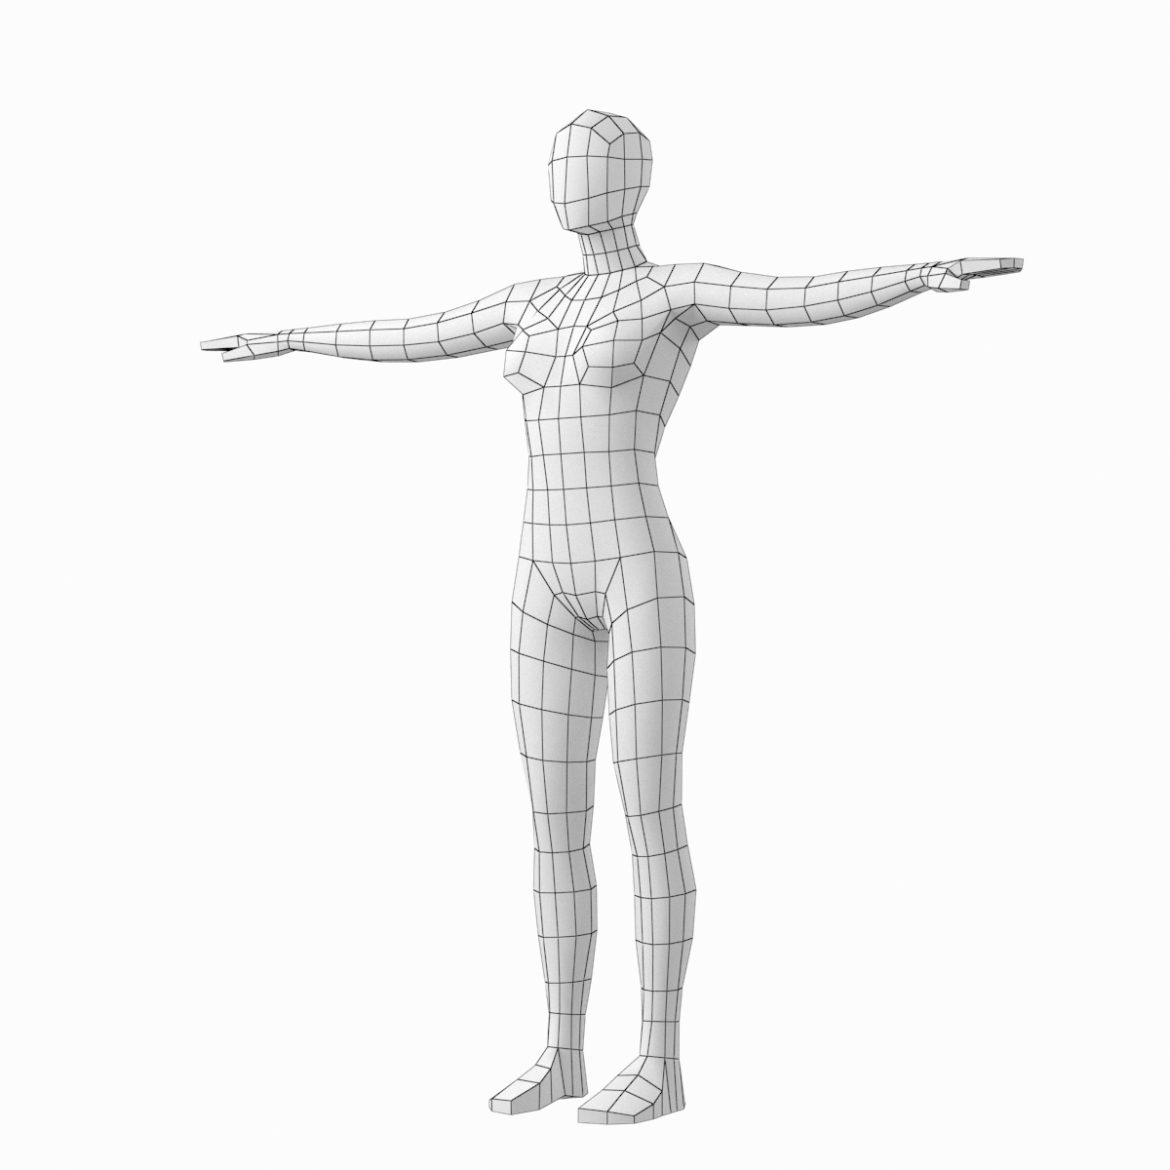 "Low-poly base mesh models of human female and male bodies with accurate natural proportions. Features: * The photos and 3D scans of real people were used to create the model. * The bodies proportions are equal to measured natural human proportions adopted in art and design. * The models were designed to be a universal… <a class=""continue"" href=""https://www.flatpyramid.com/3d-models/characters-3d-models/characters-collections/female-and-male-base-mesh-in-t-pose/"">Continue Reading<span> Female and Male Base Mesh in T-Pose</span></a> <a class=""continue"" href=""https://www.flatpyramid.com/3d-models/characters-3d-models/characters-collections/female-and-male-base-mesh-in-t-pose/"">Continue Reading<span> Female and Male Base Mesh in T-Pose</span></a>"